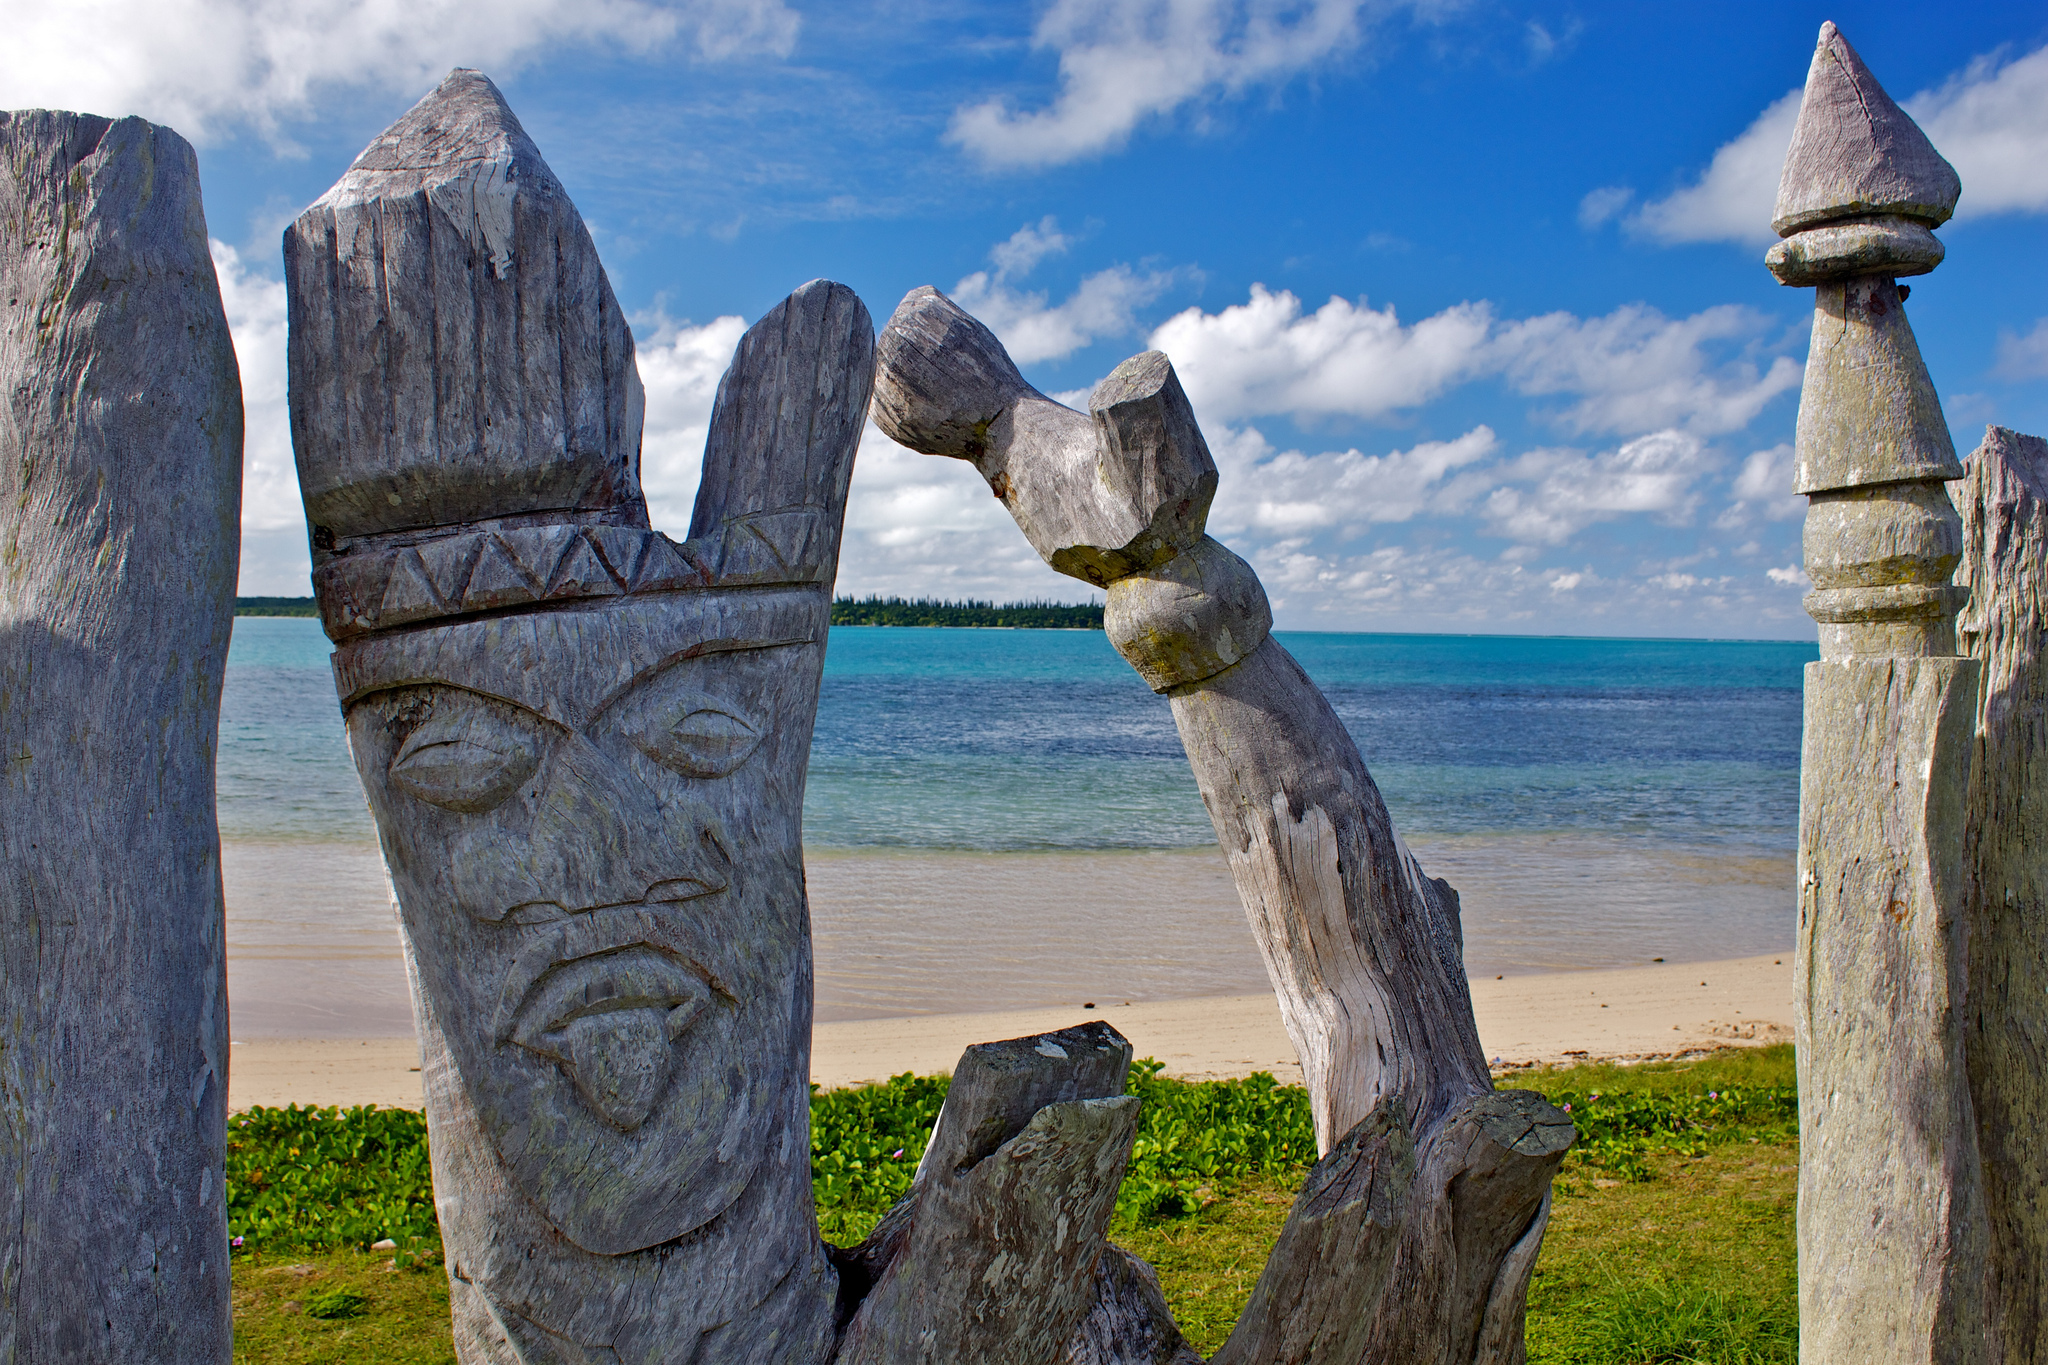 Things not to miss in New Caledonia